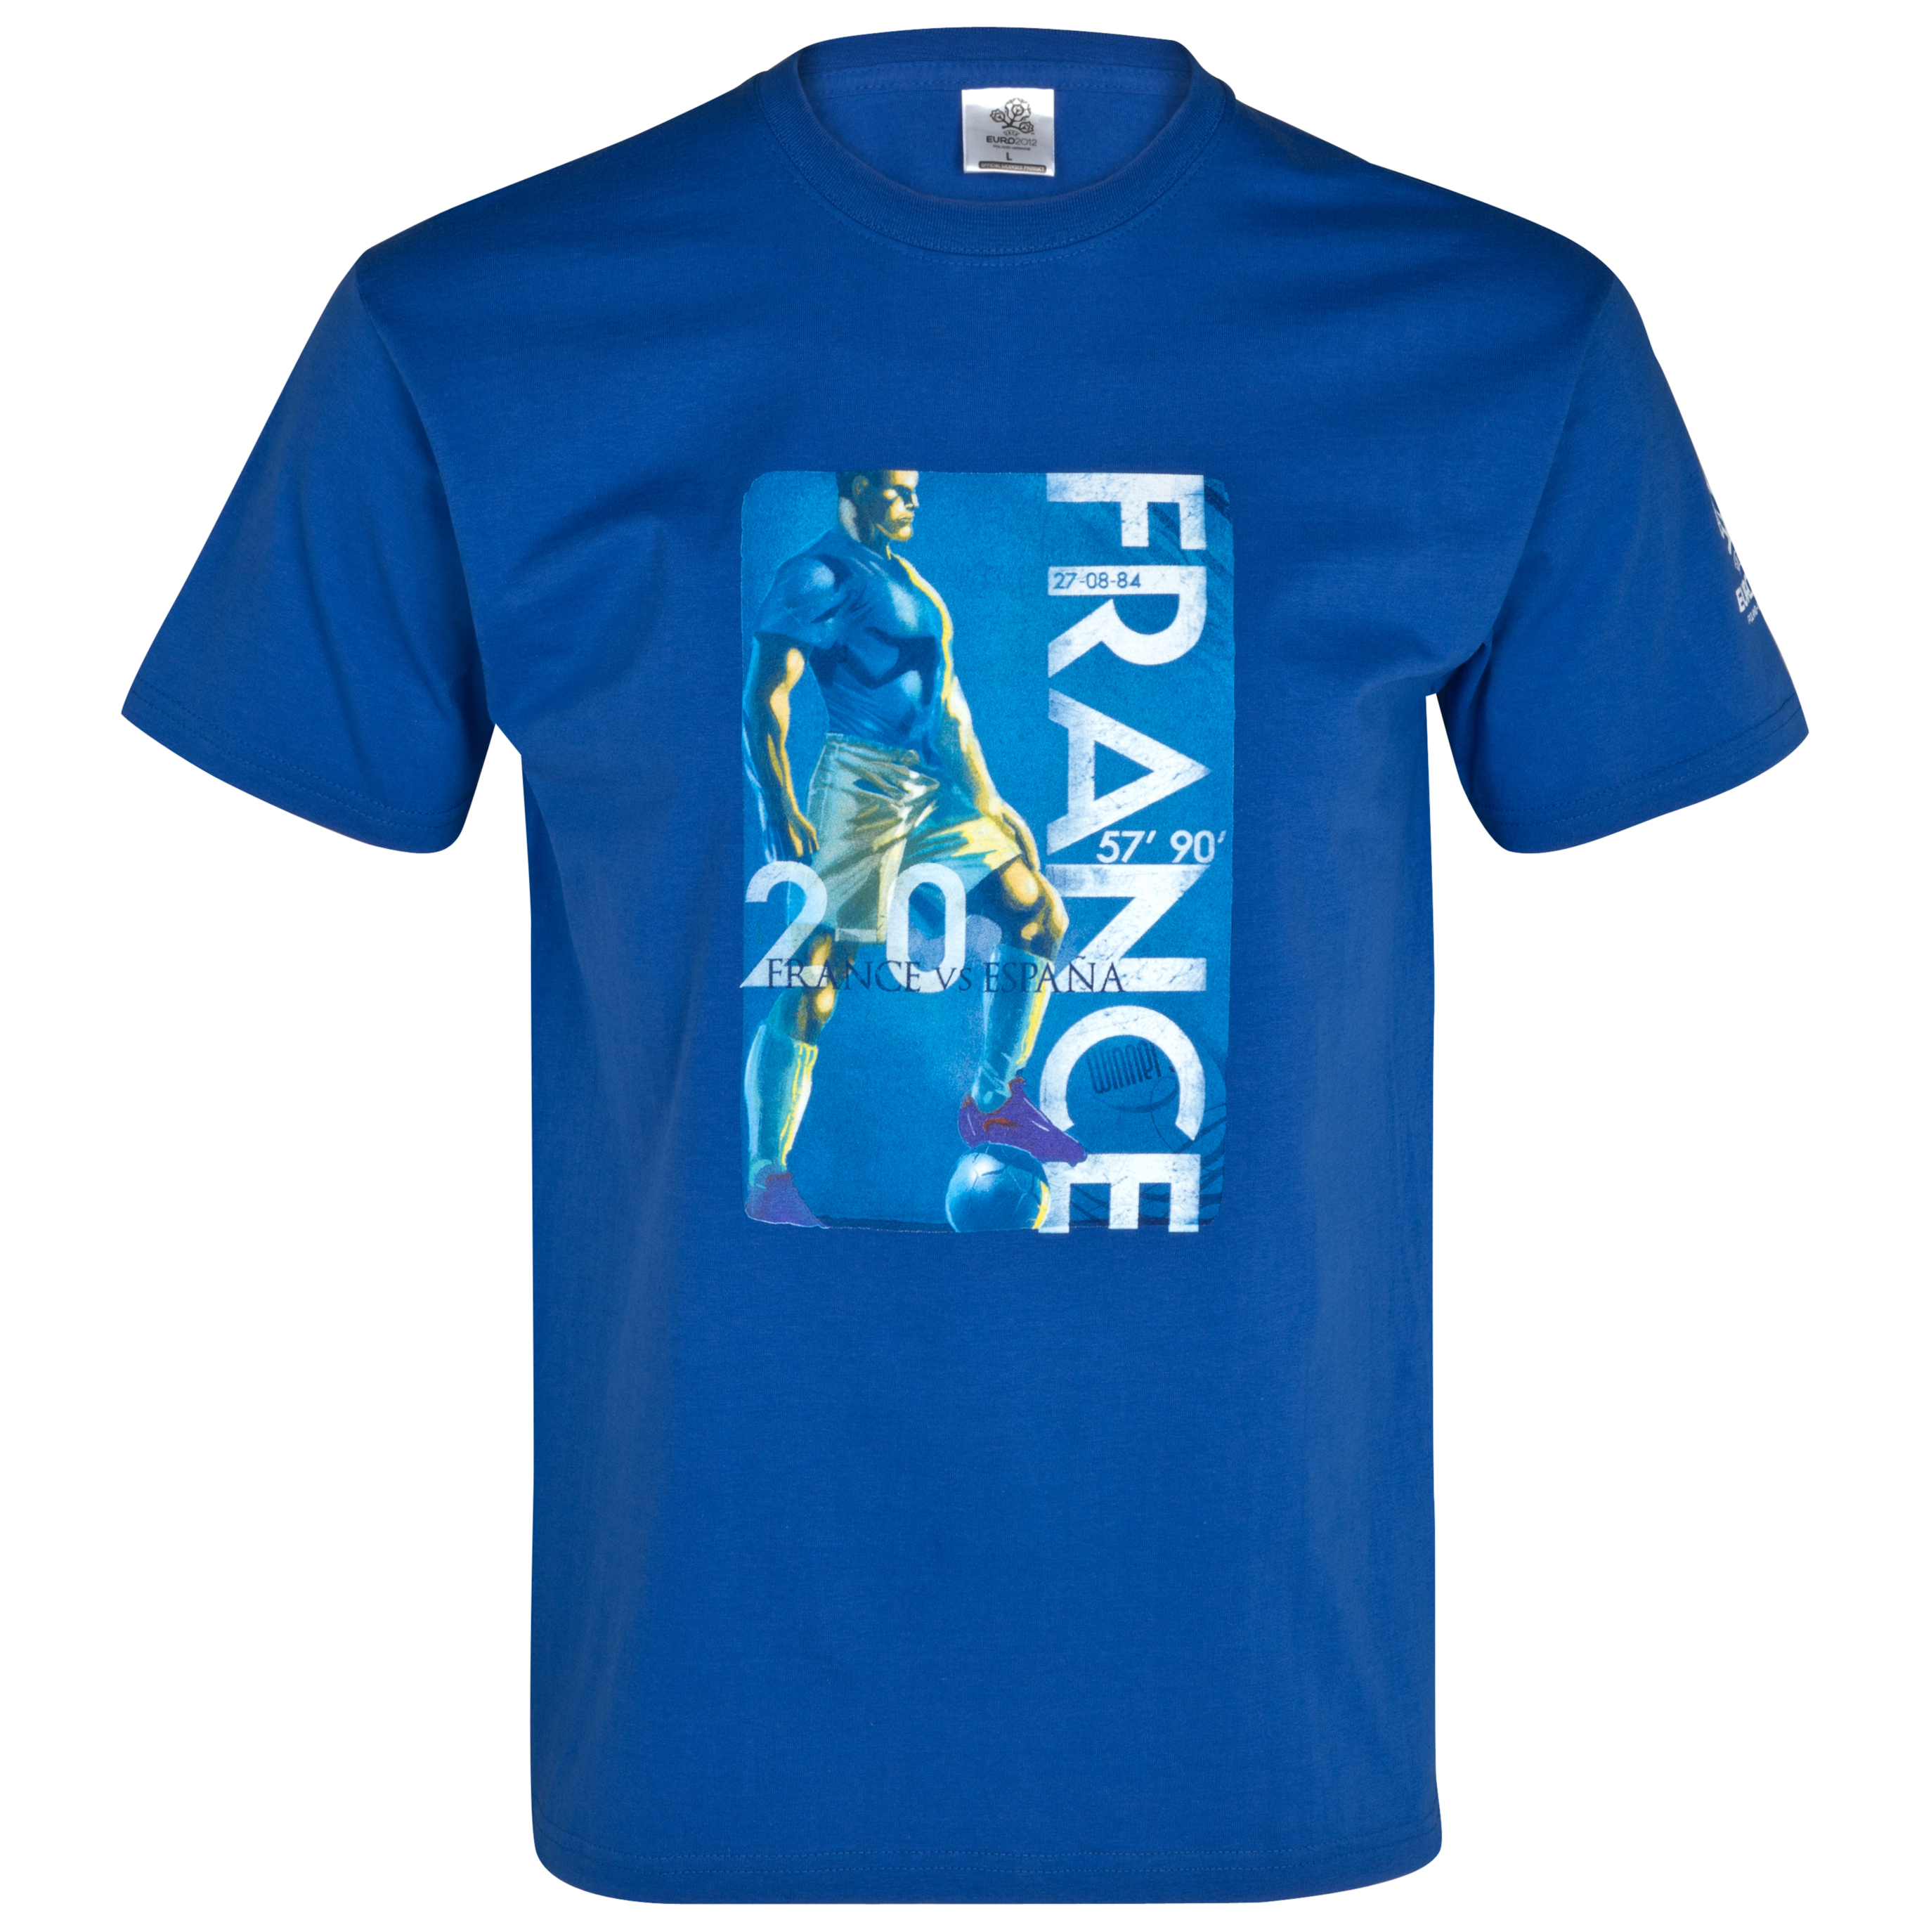 France Winners 1984 T-Shirt - Blue